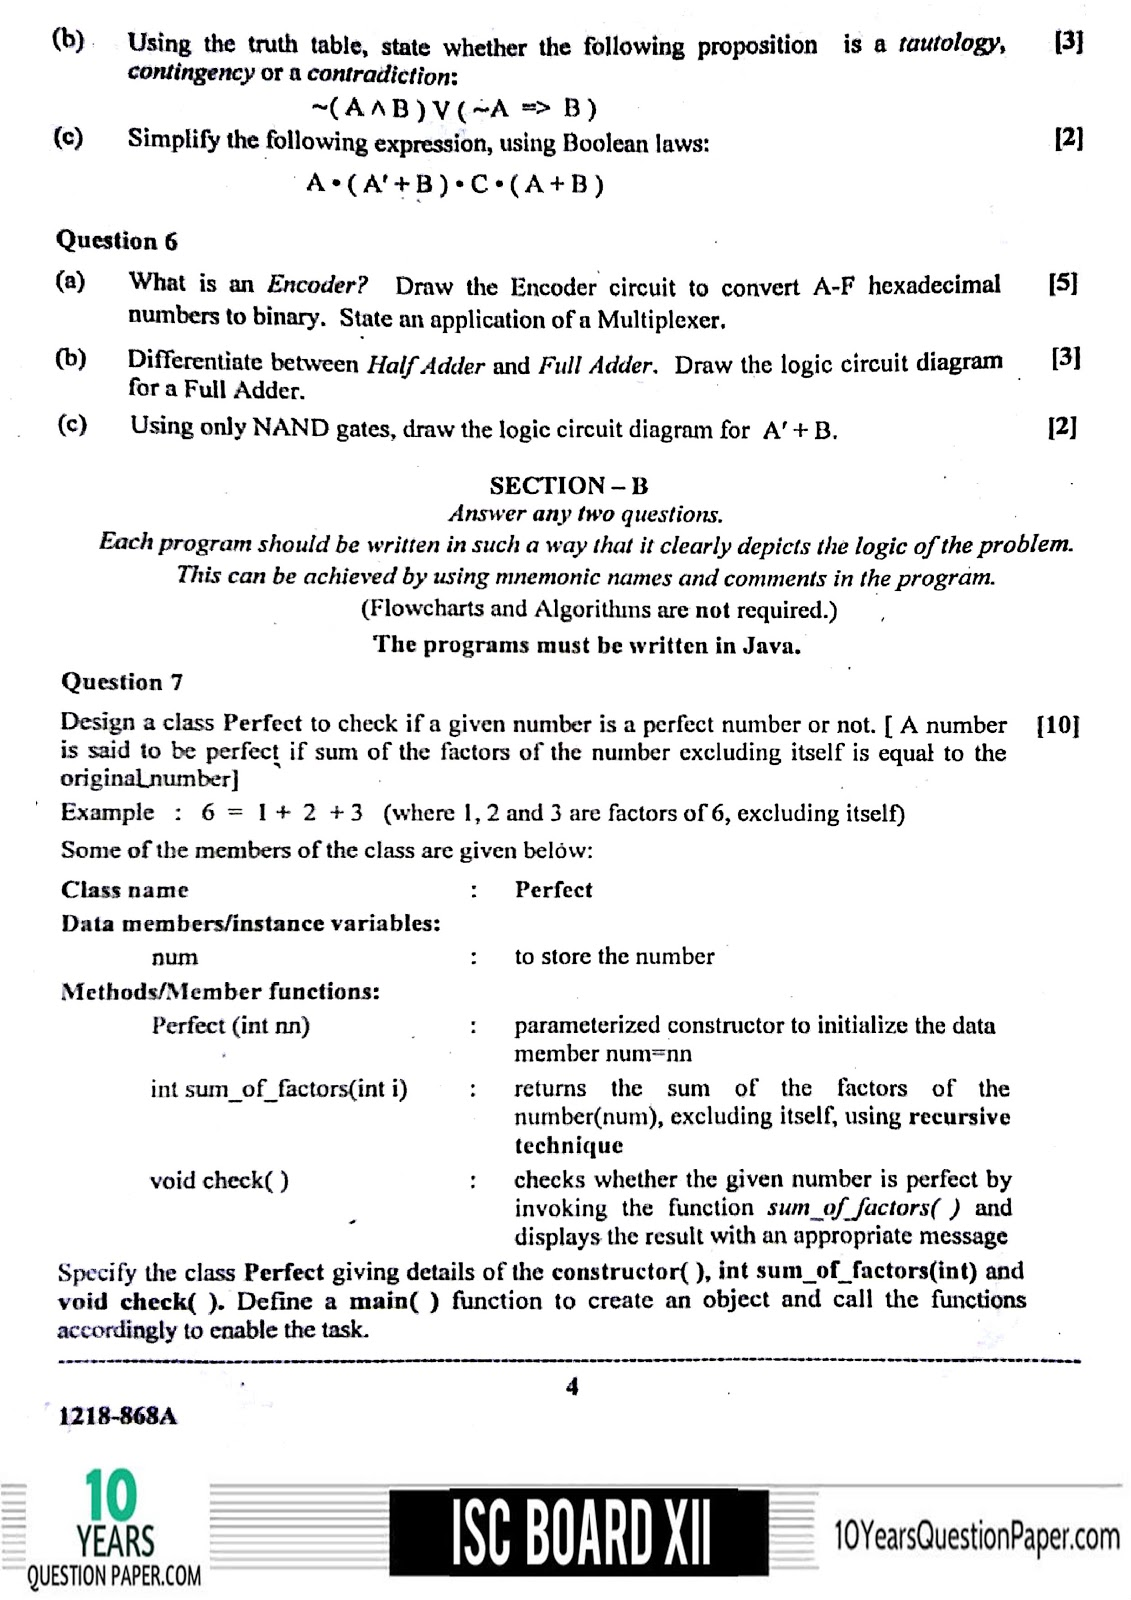 ISC 2018 class 12th Computer Science THEORY question paper